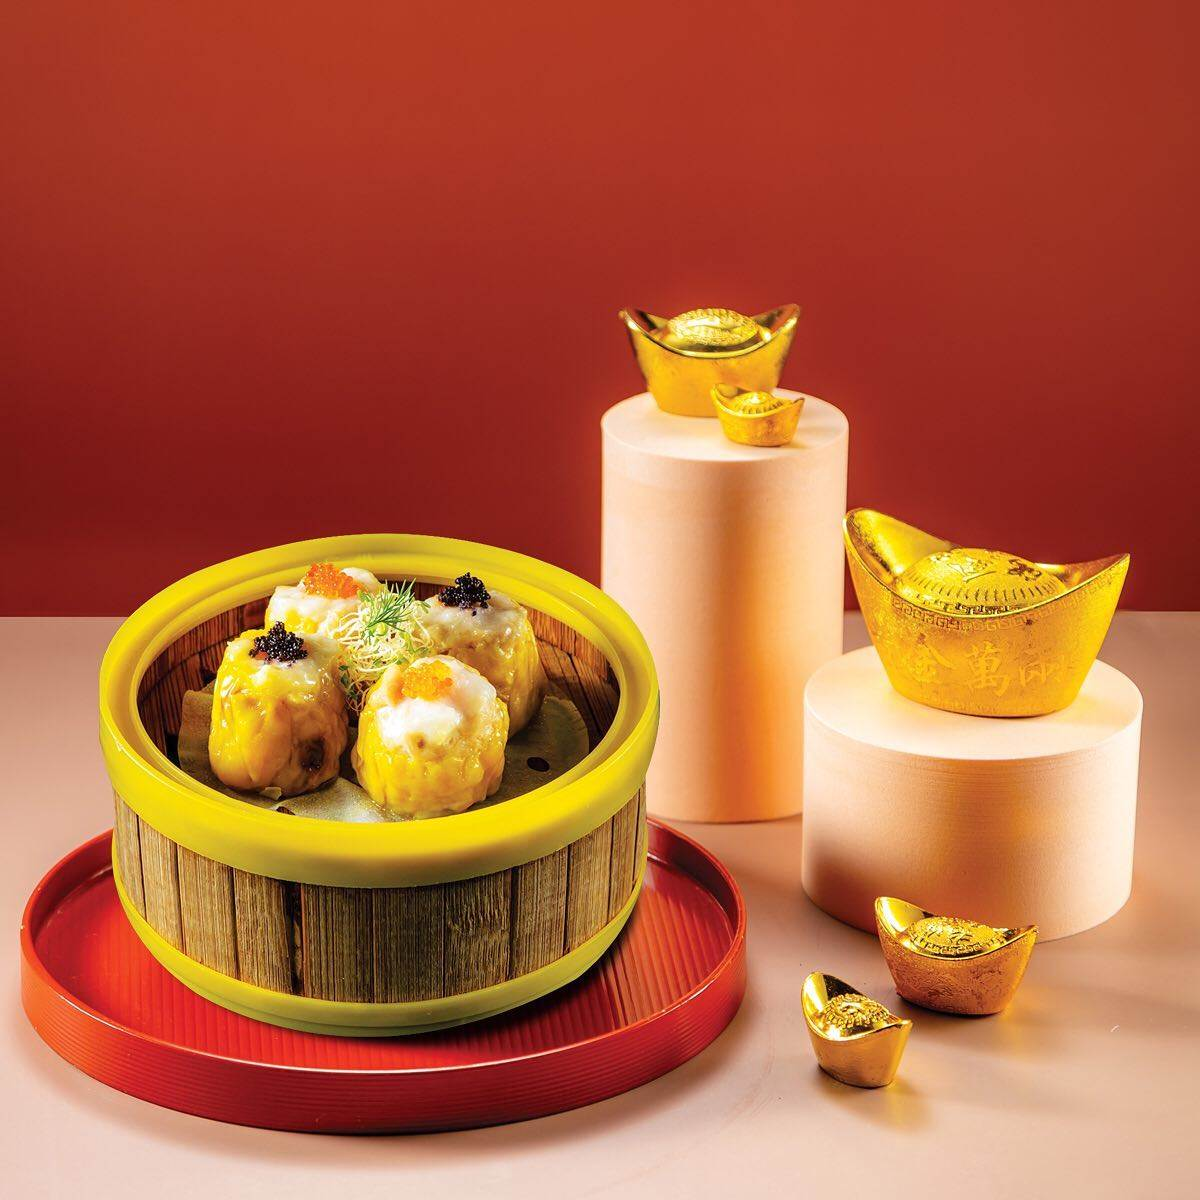 CNY Reunion dinner deliveries - Way Modern Chinois